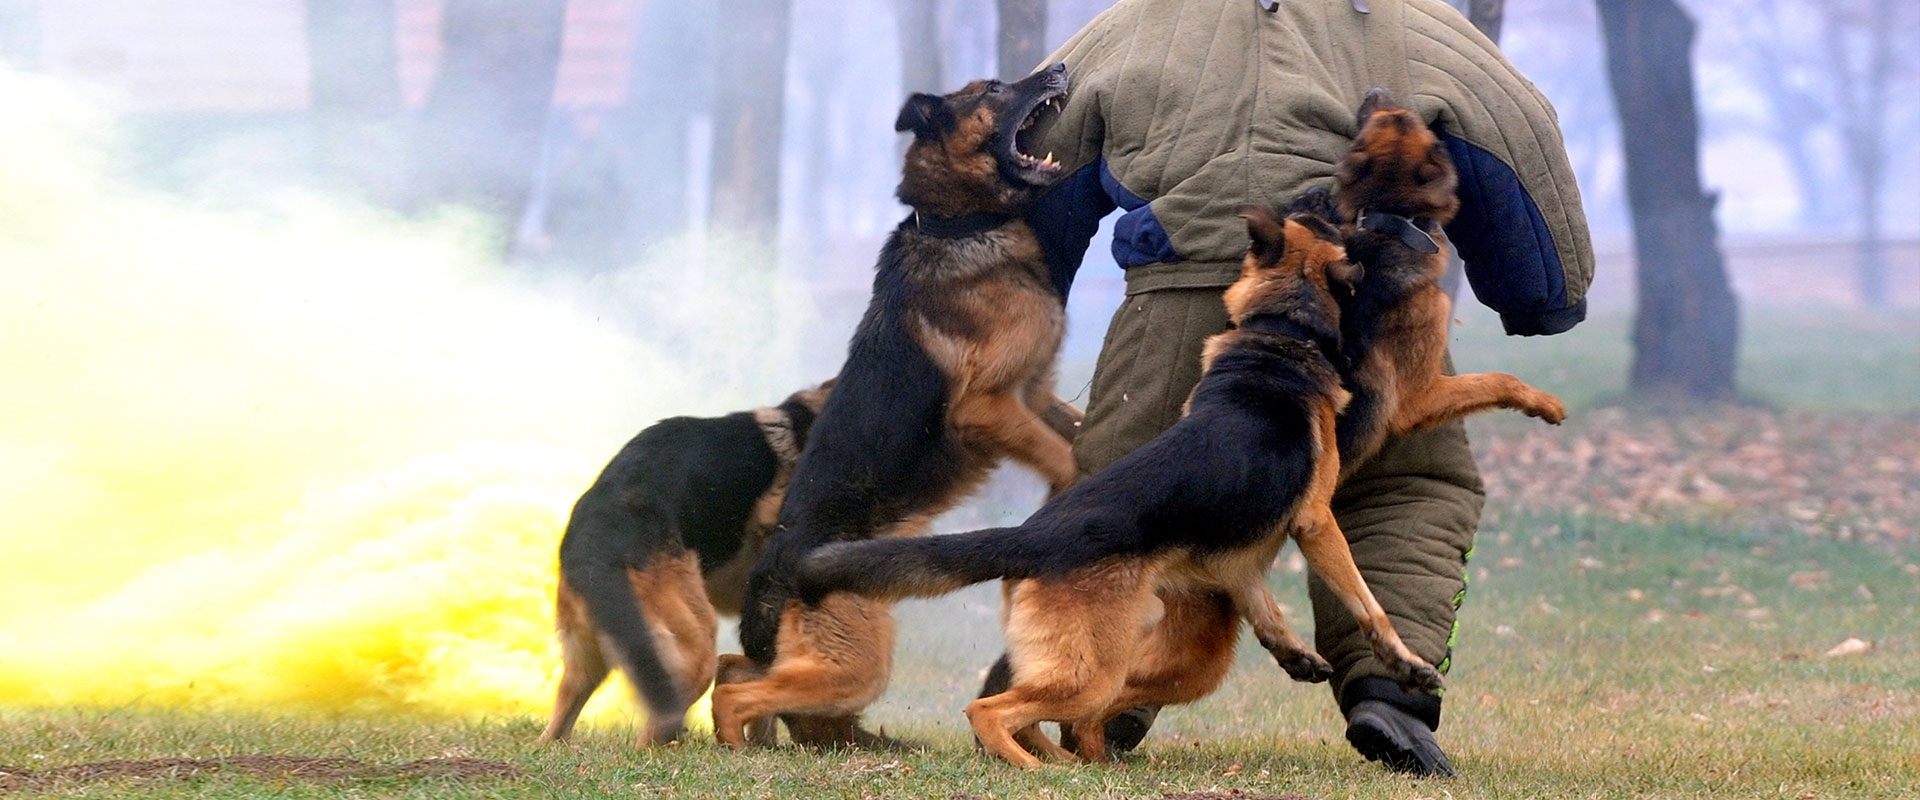 CQB K-9 Personal Protection Dogs